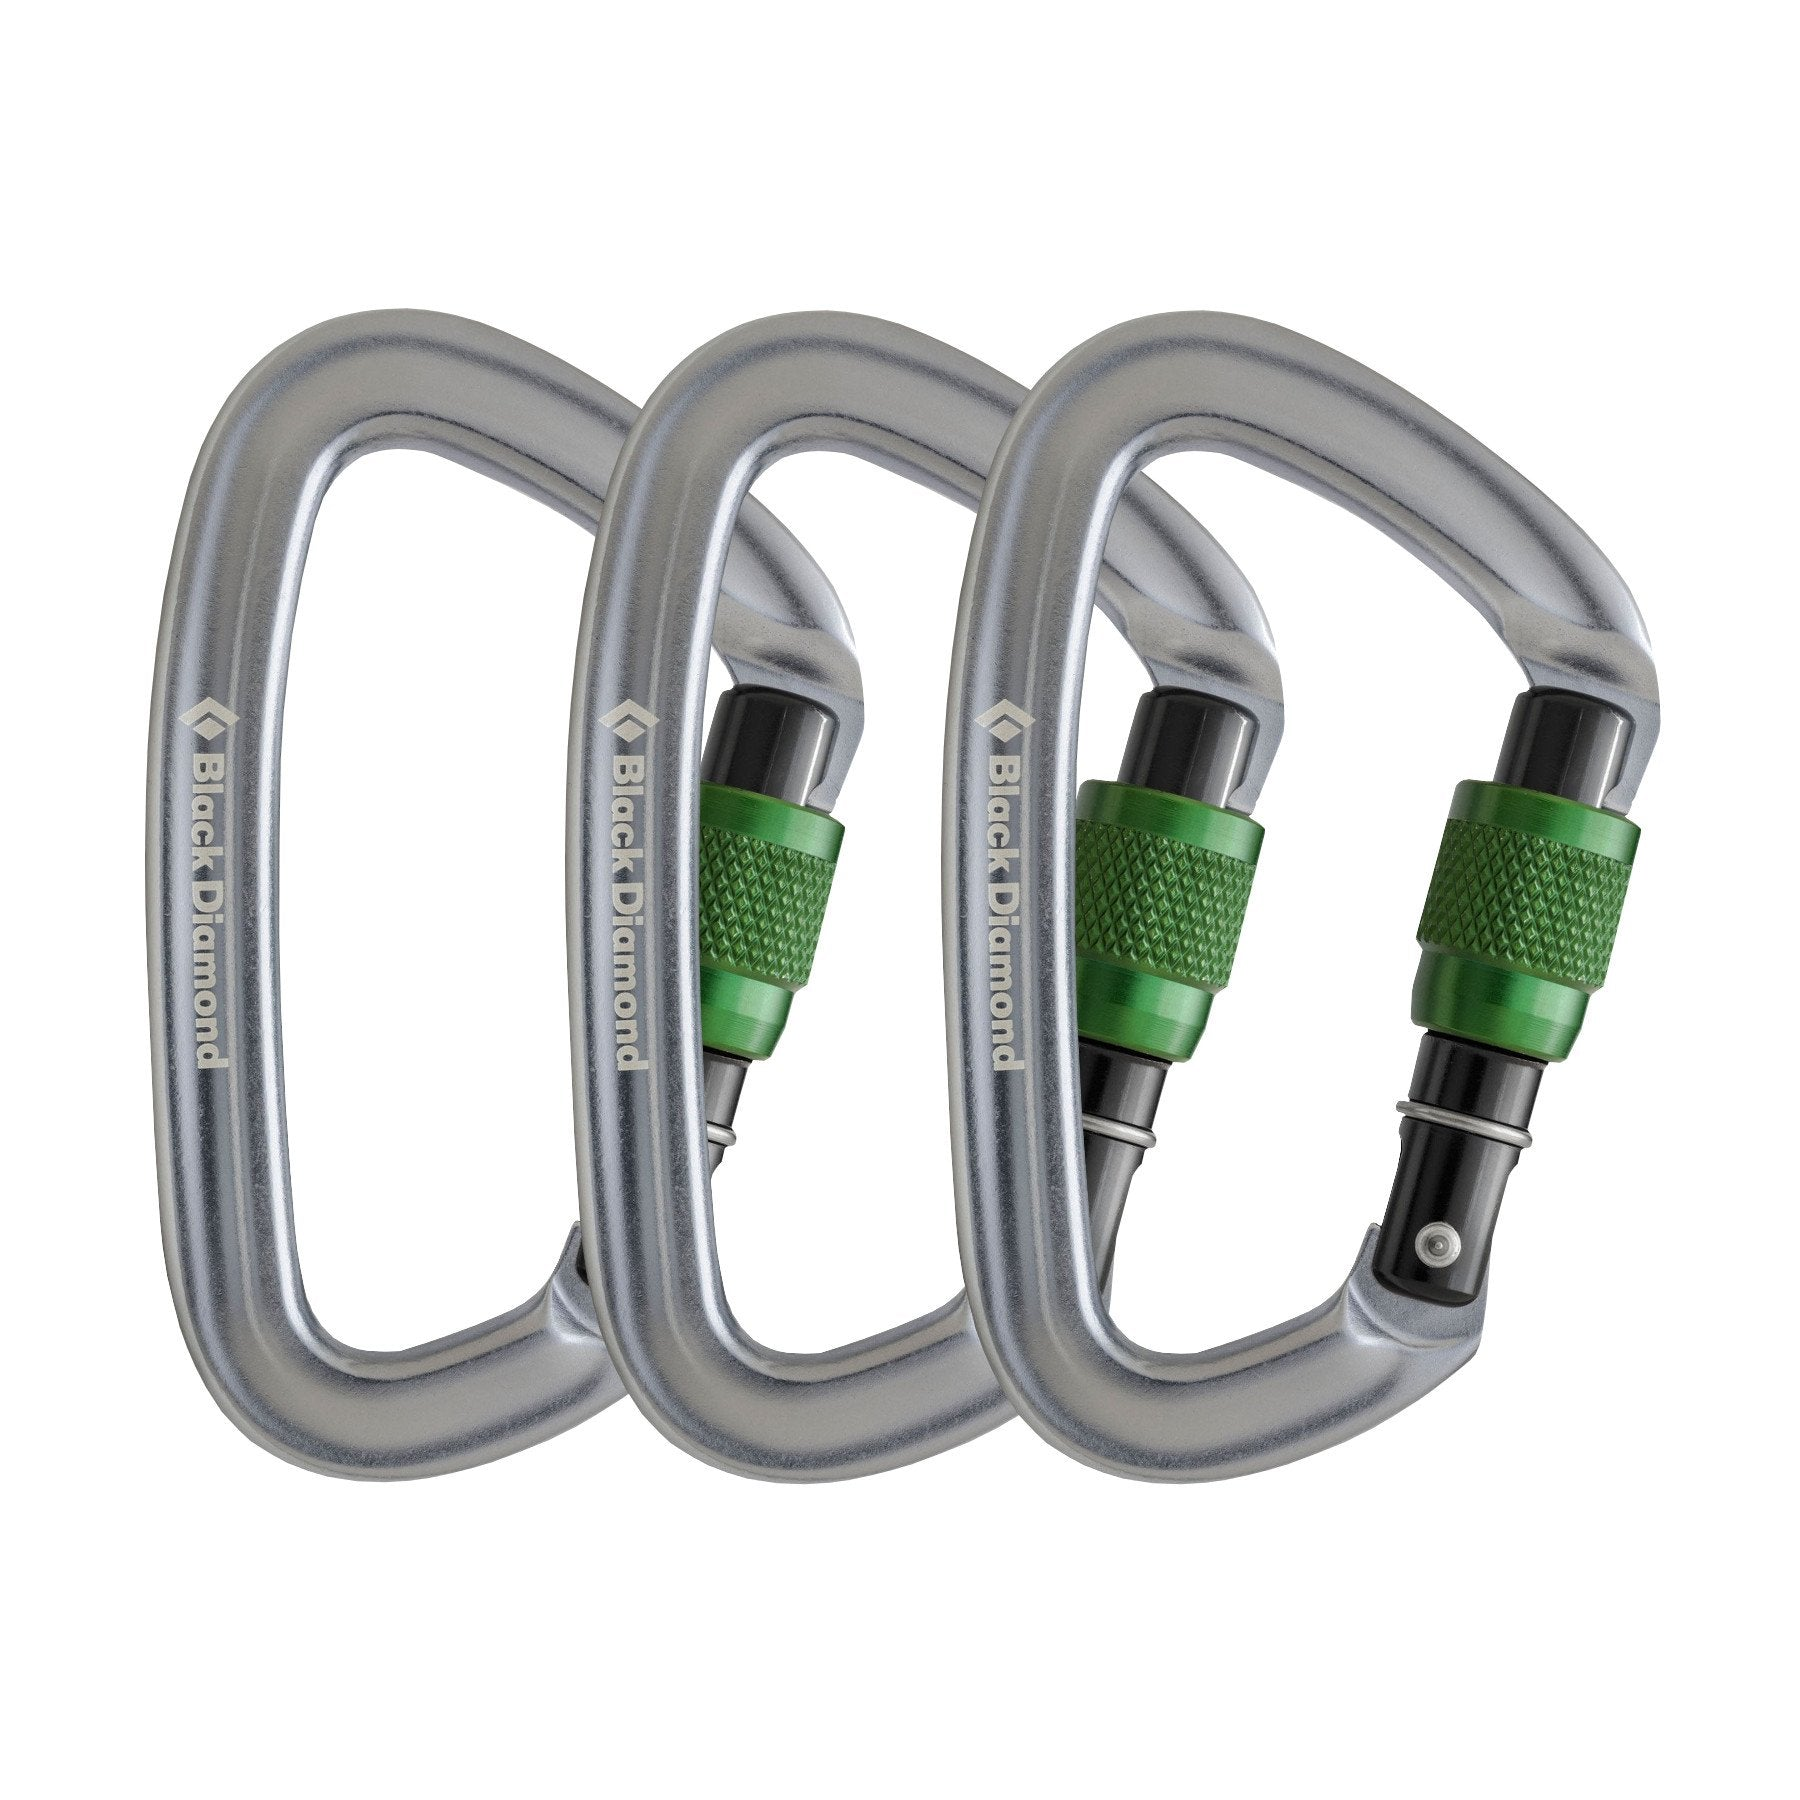 3 pack of the Black Diamond Positron Screwgate carabiner in Silver & Green colours